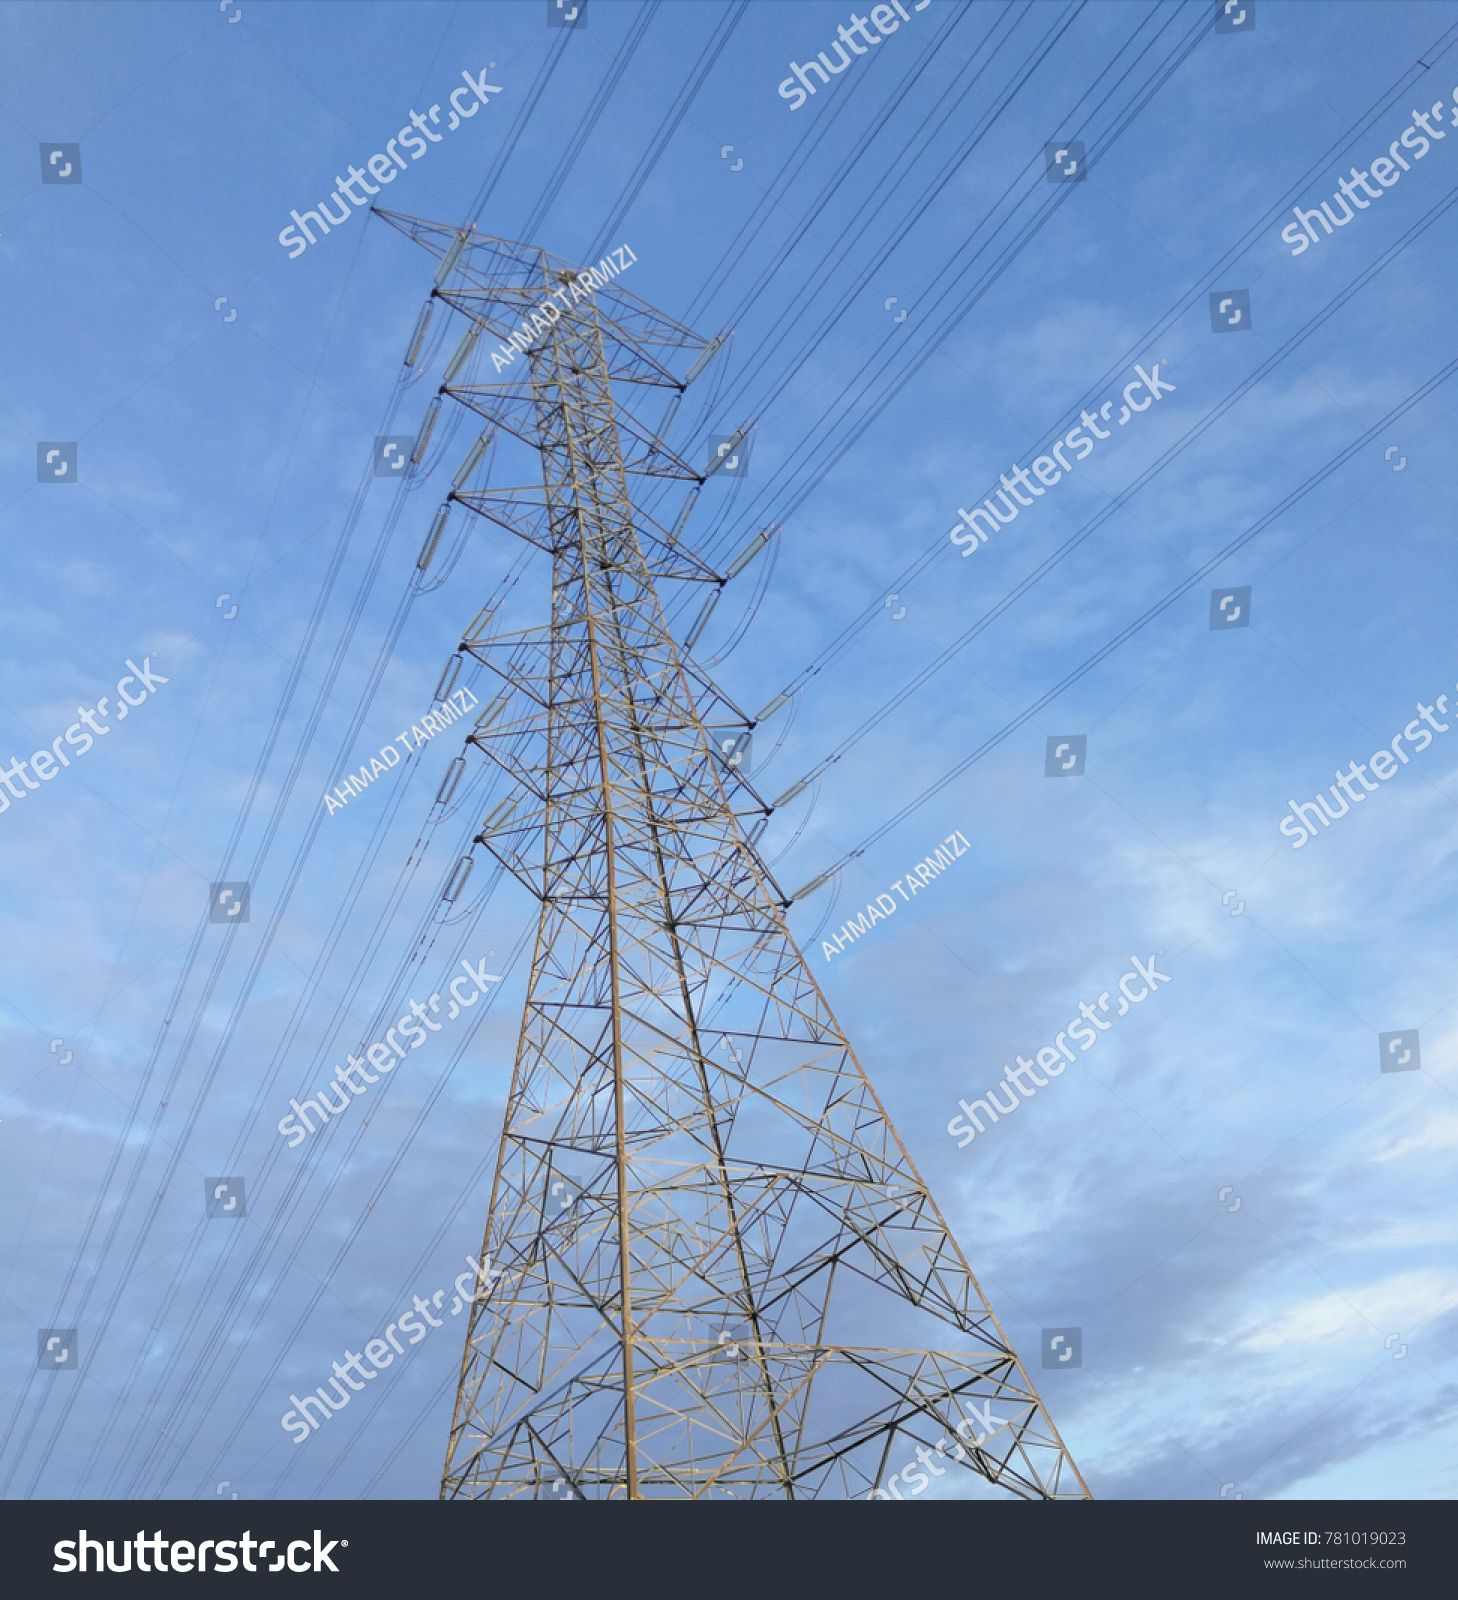 Electric Power Transmission Is One Process In The Transmitting Of Electricity To Consumers Near Shah Alam Mal Electric Power Modern Branding Logo Stock Photos